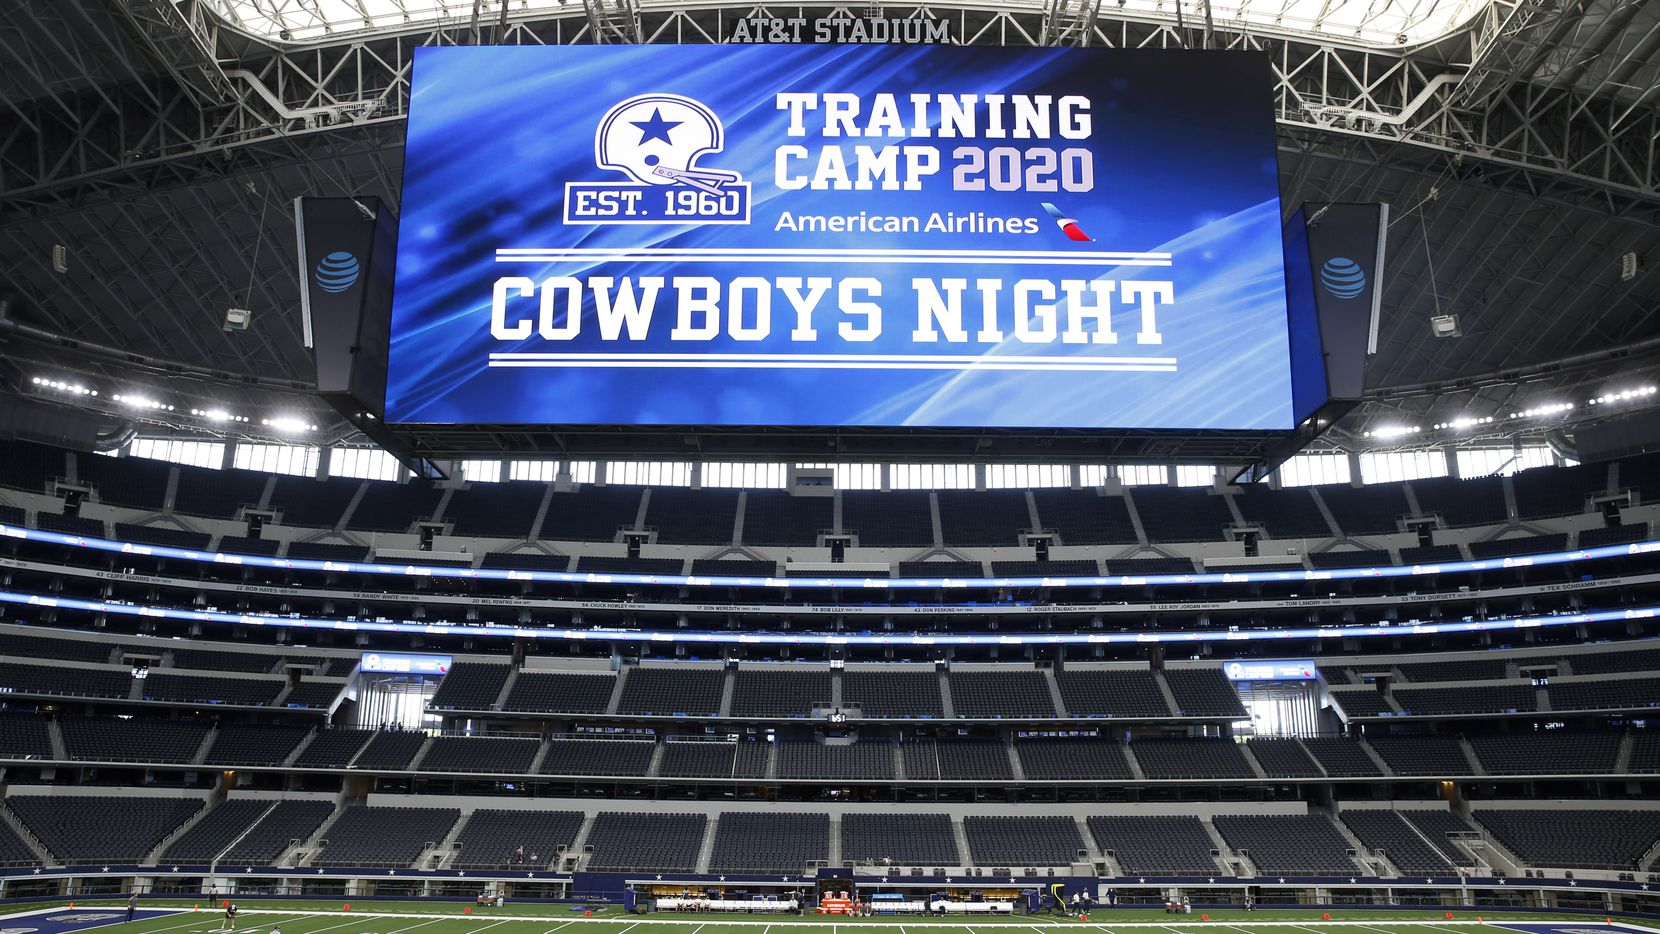 Dallas Cowboys players warmup before the start of practice on Cowboys Night during training camp at the Dallas Cowboys headquarters at AT&T Stadium in Arlington, Texas on Sunday, August 30, 2020.